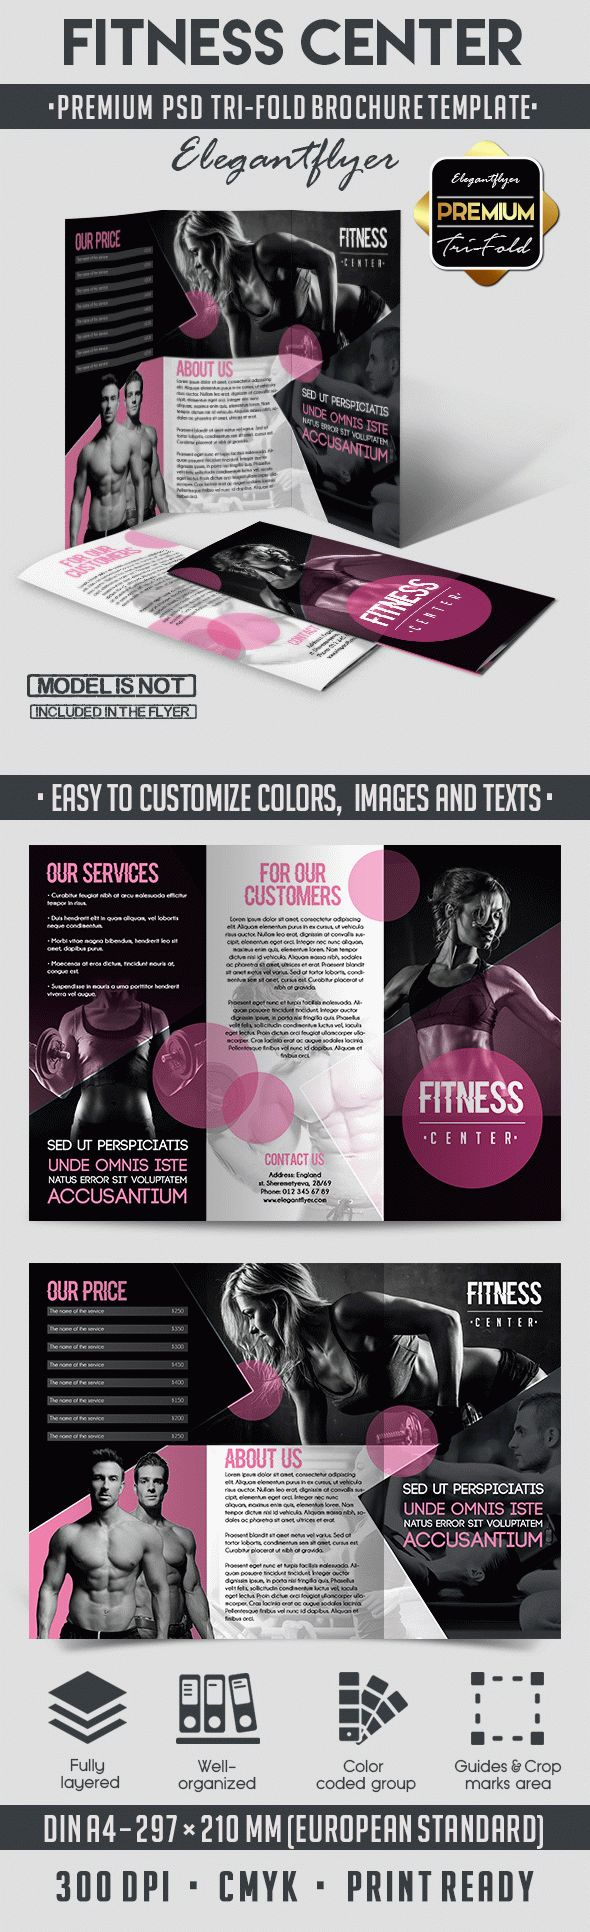 Fitness Center TriFold PSD Brochure Template by ElegantFlyer – Fitness Brochure Template